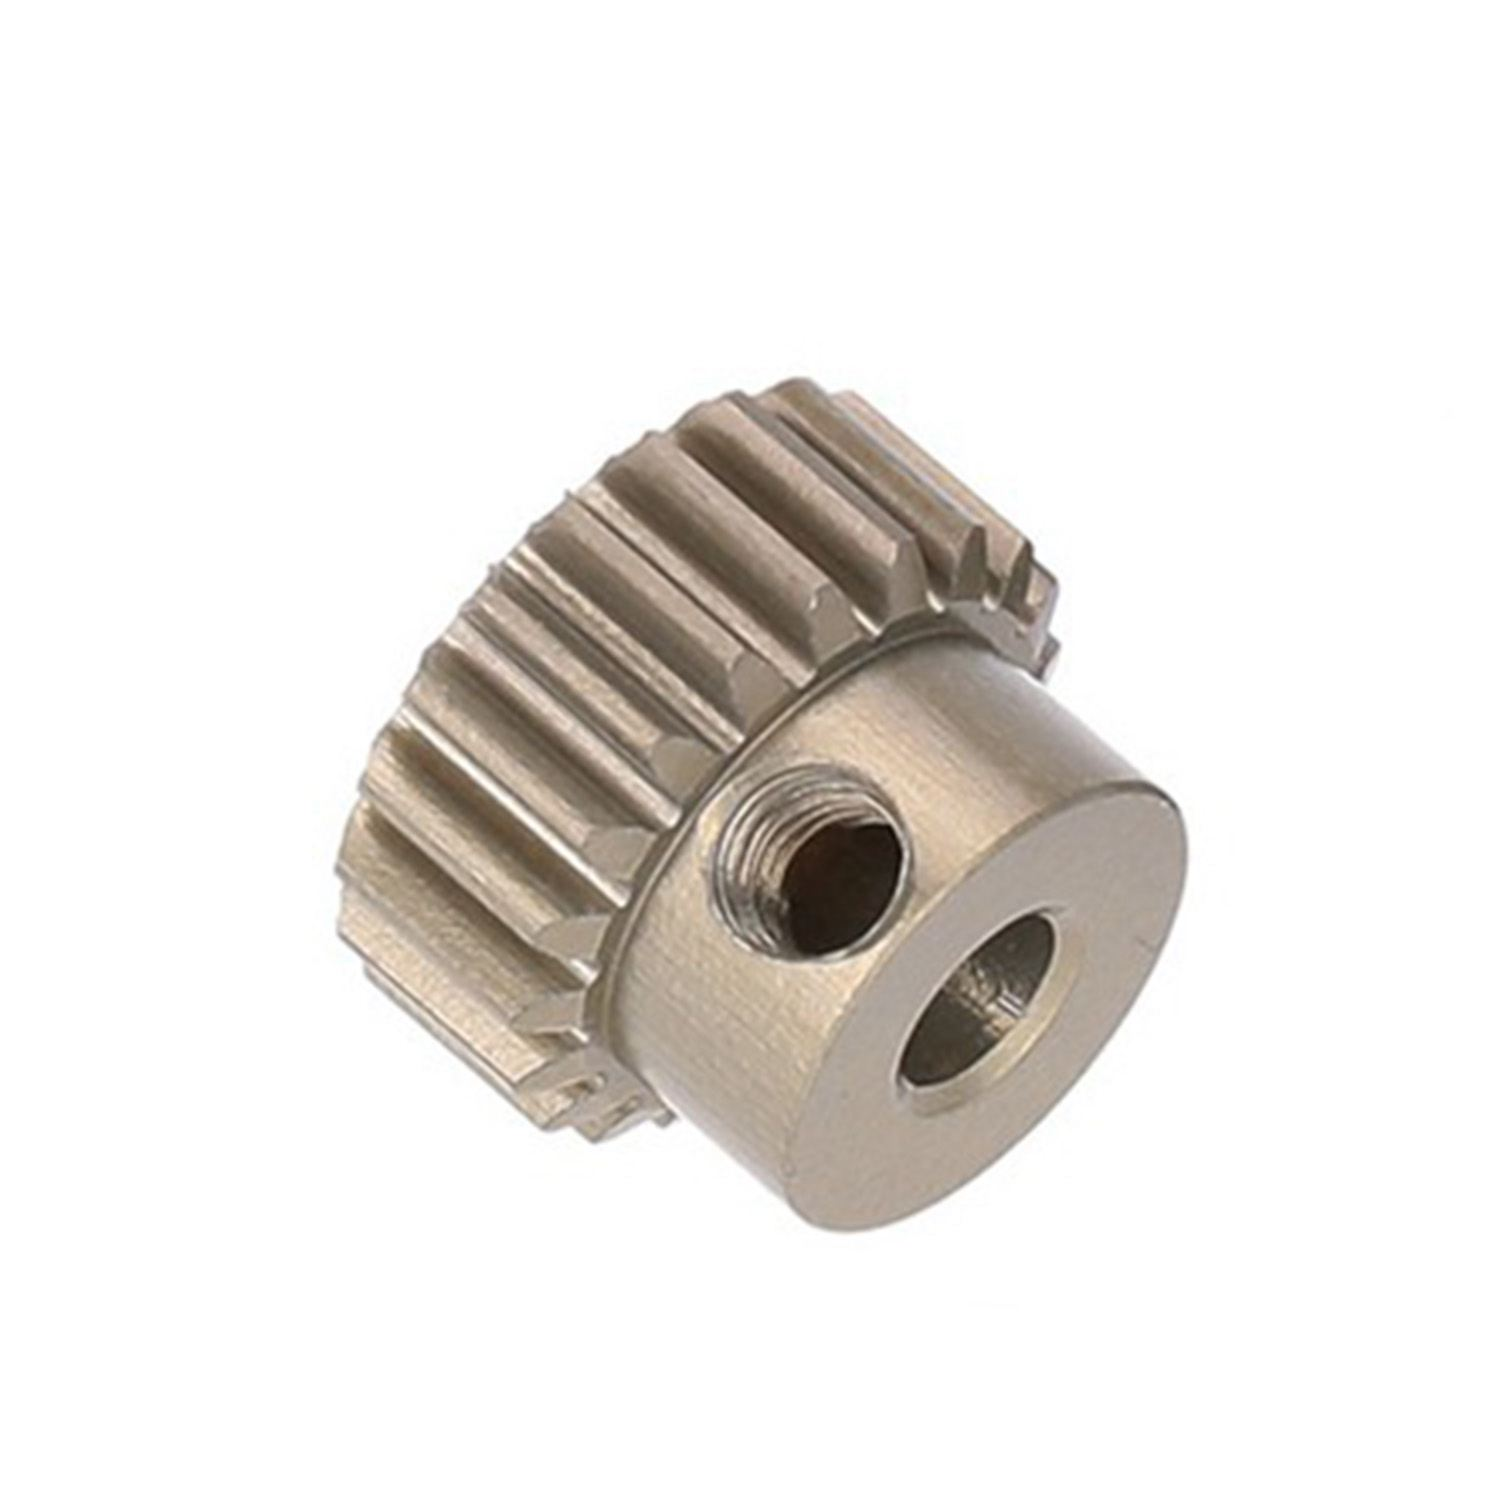 Metal 48DP Rust-proof Gear 3.175mm Motor Pinion Gear 20T 21T 28T 32T 35T 36T 38T for RC Car Brushed Brushless Motor hongnor ofna x3e rtr 1 8 scale rc dune buggy cars electric off road w tenshock motor free shipping